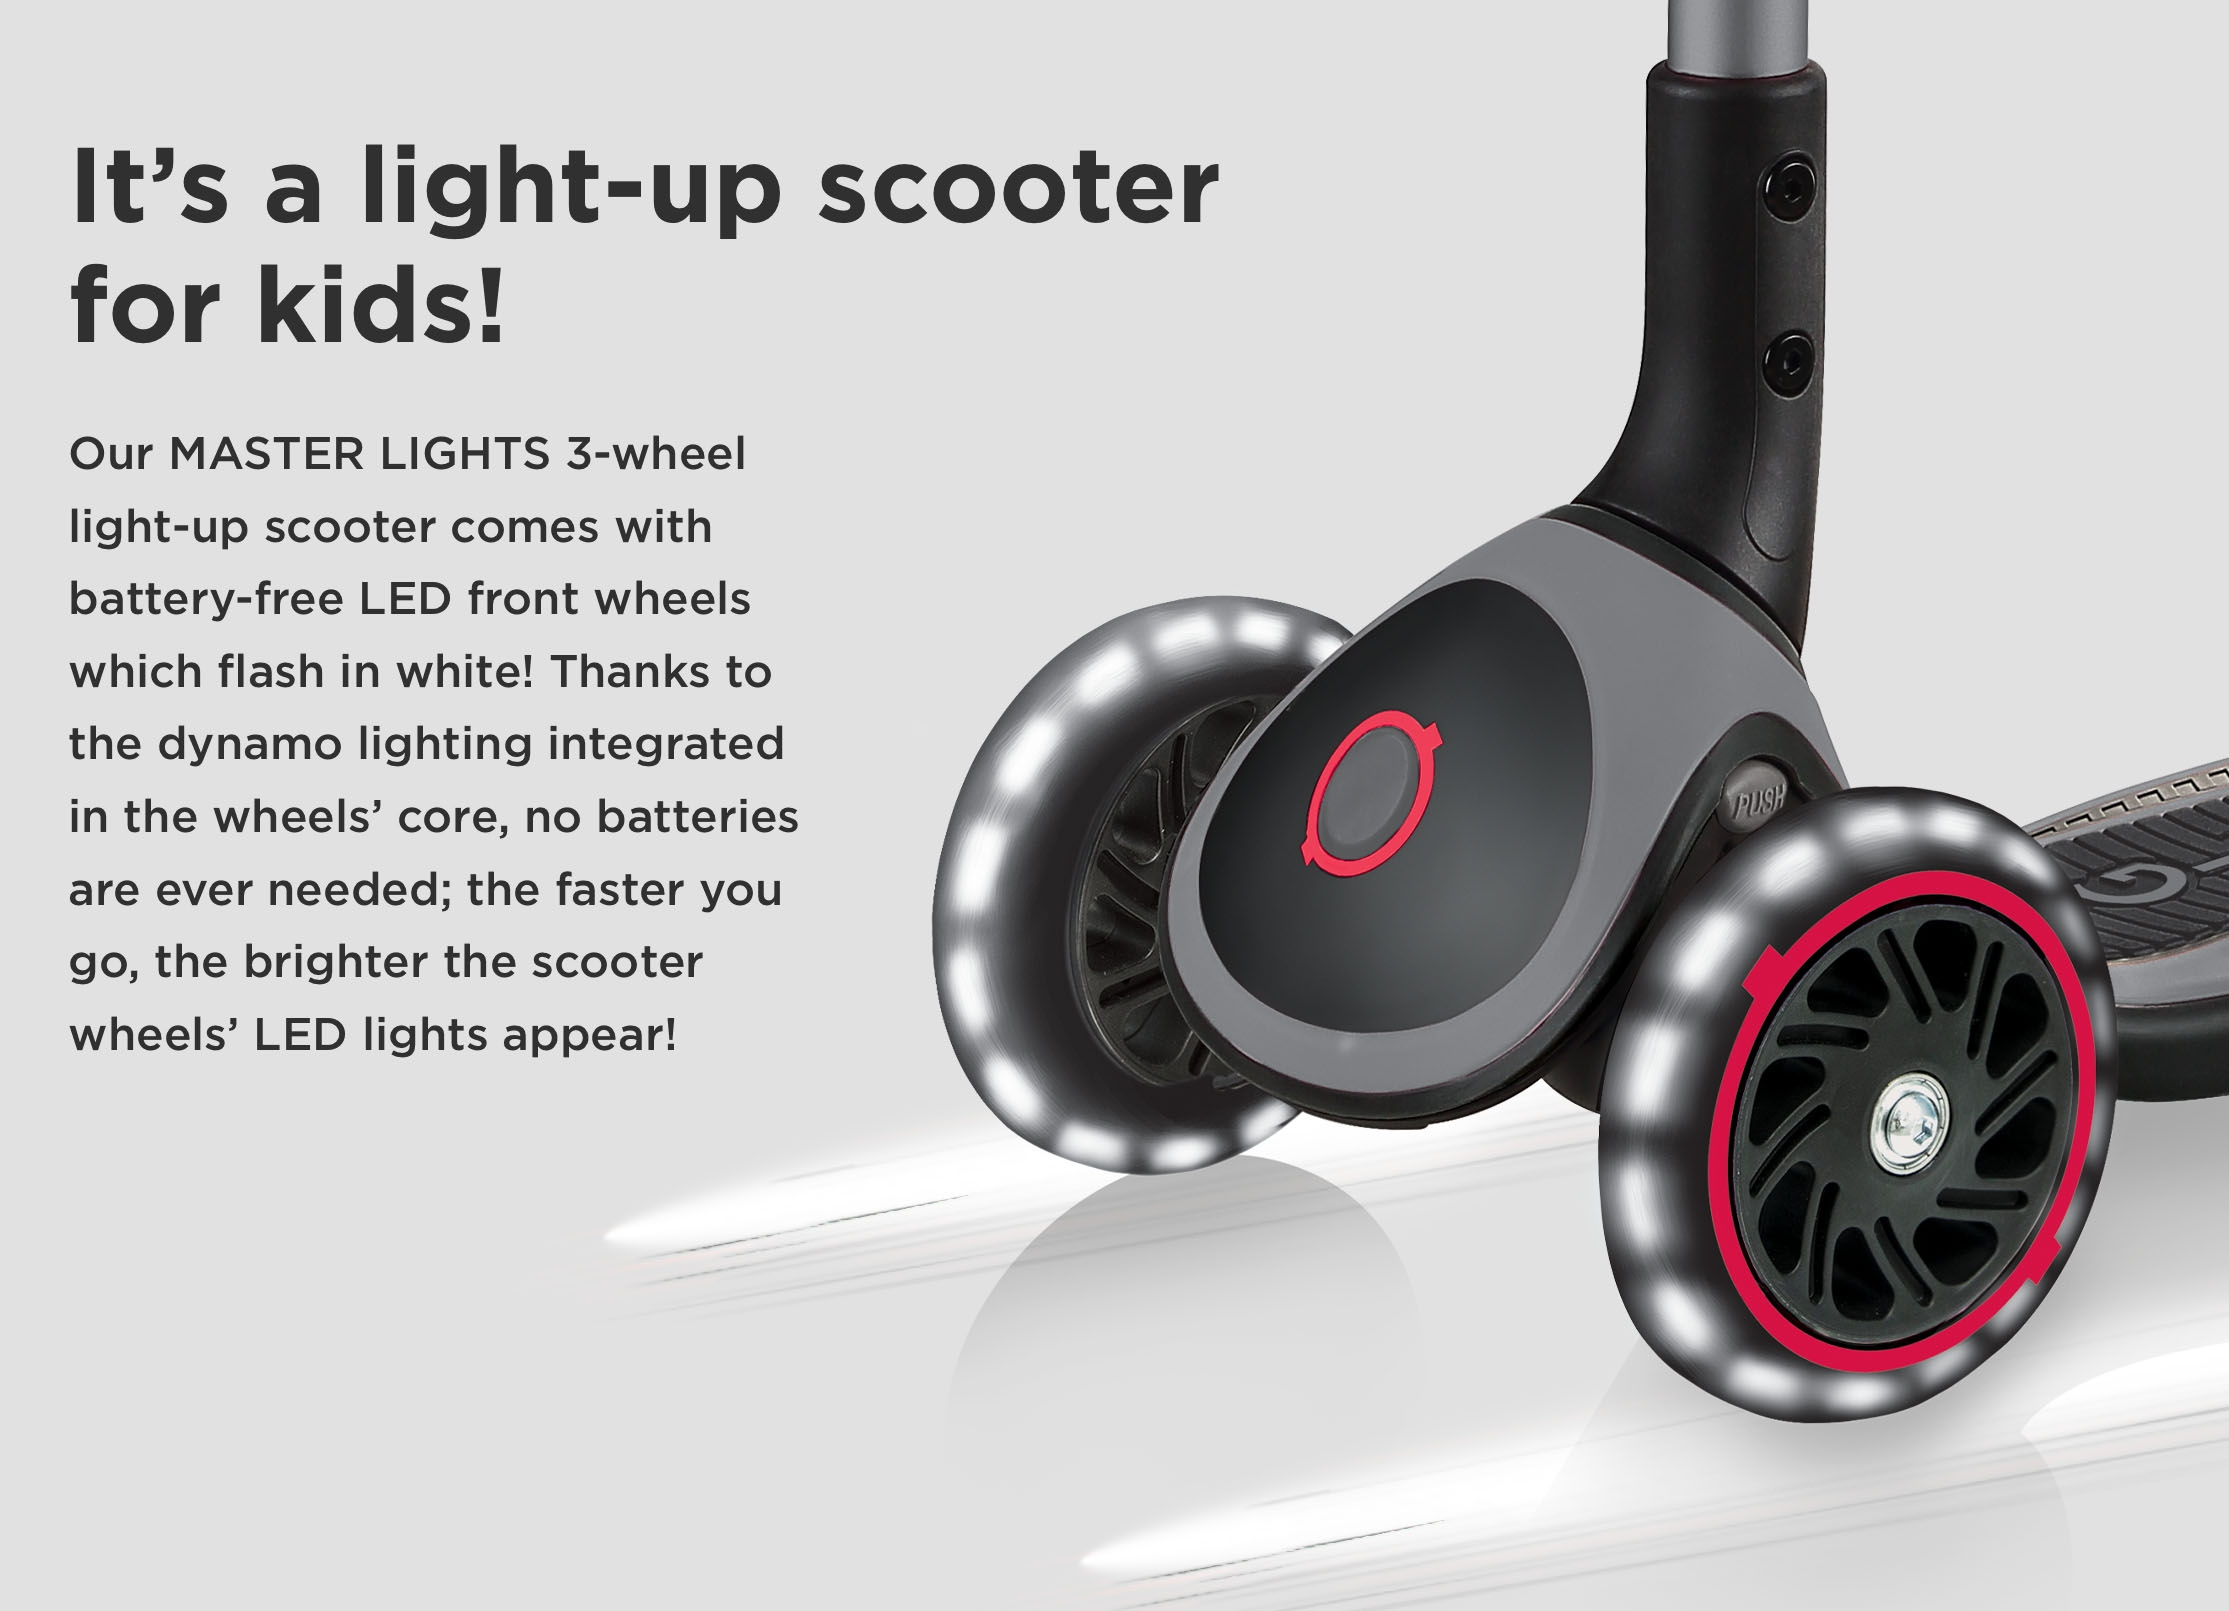 It's a light-up scooter for kids! Our MASTER LIGHTS 3-wheel light-up scooter comes with battery-free LED front wheels which flash in white! Thanks to the dynamo lighting integrated in the wheels' core, no batteries are ever needed; the faster you go, the brighter the scooter wheels' LED lights appear!